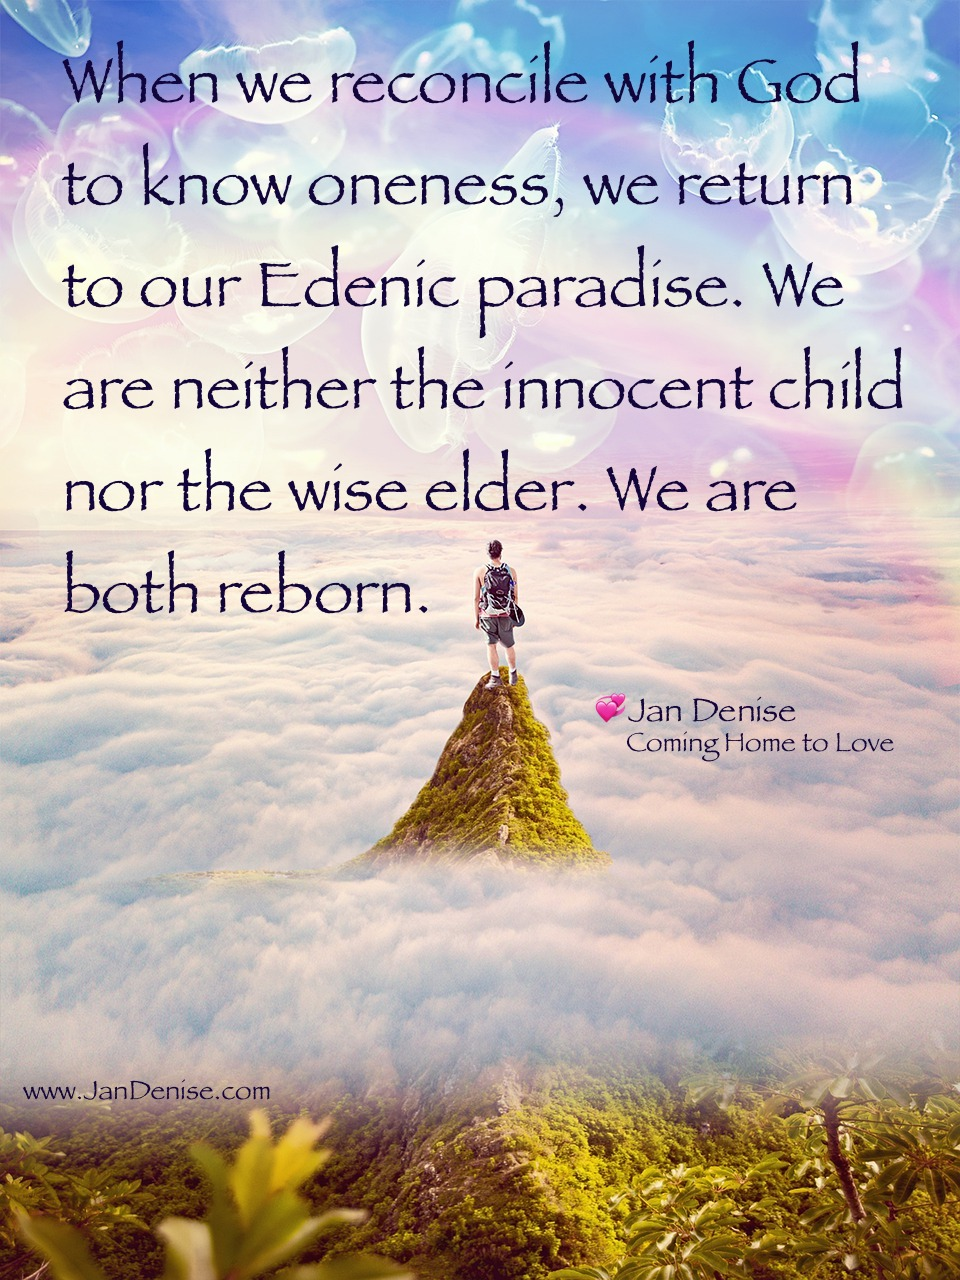 We can know oneness …